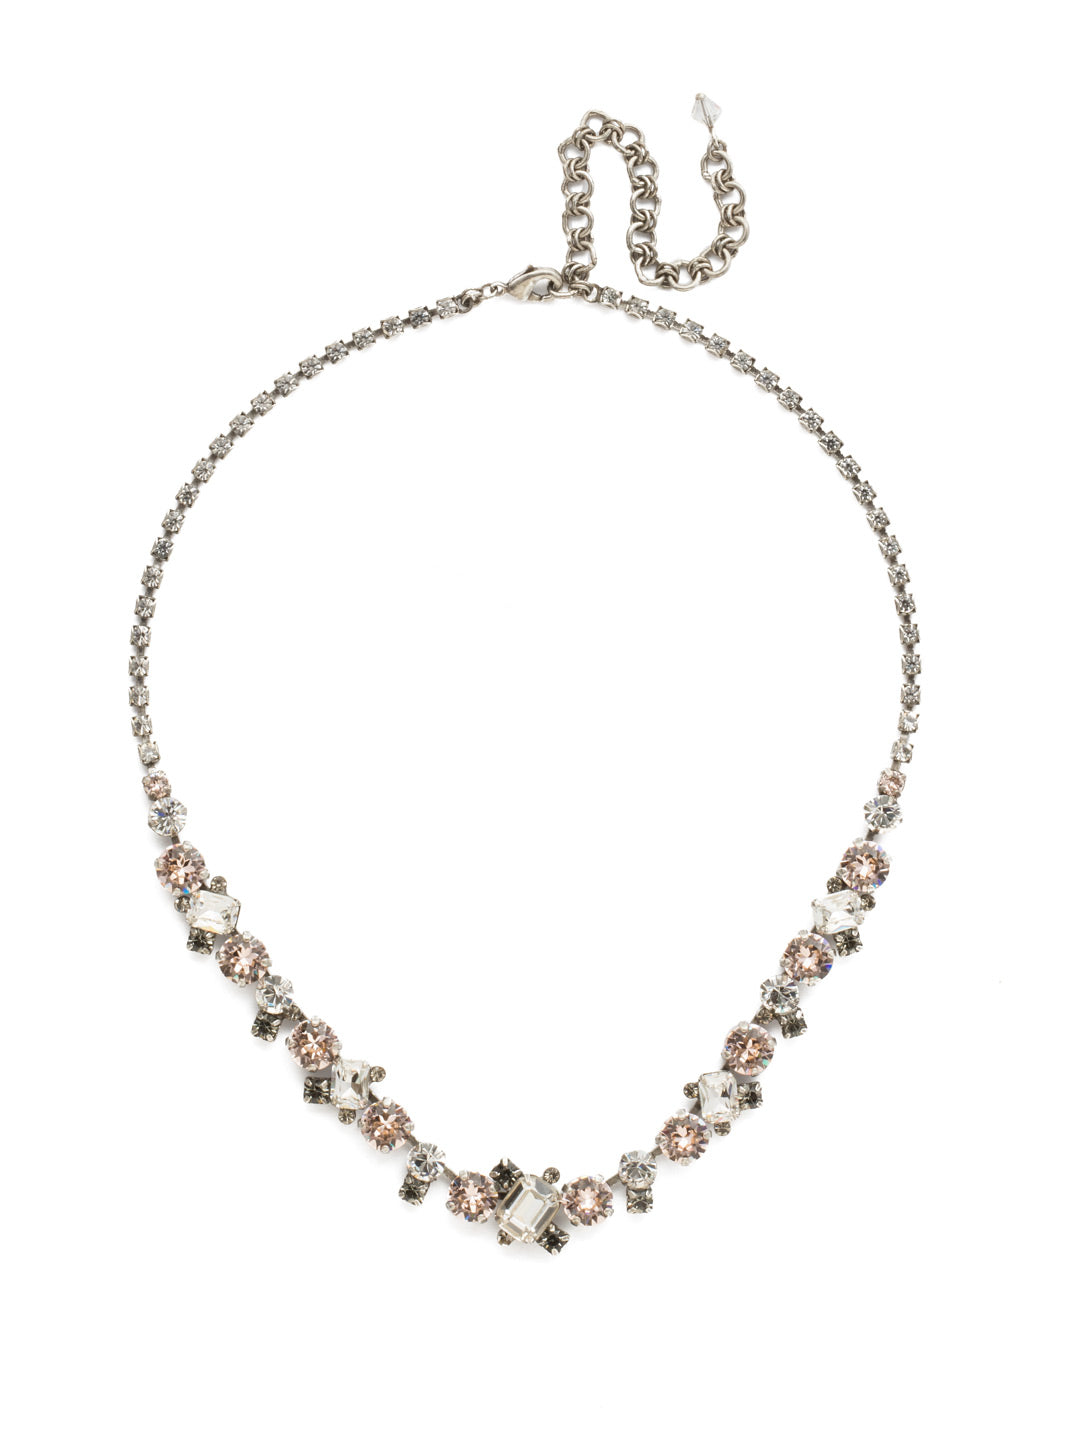 Sophisticated Tennis Necklace - NDK17ASSNB